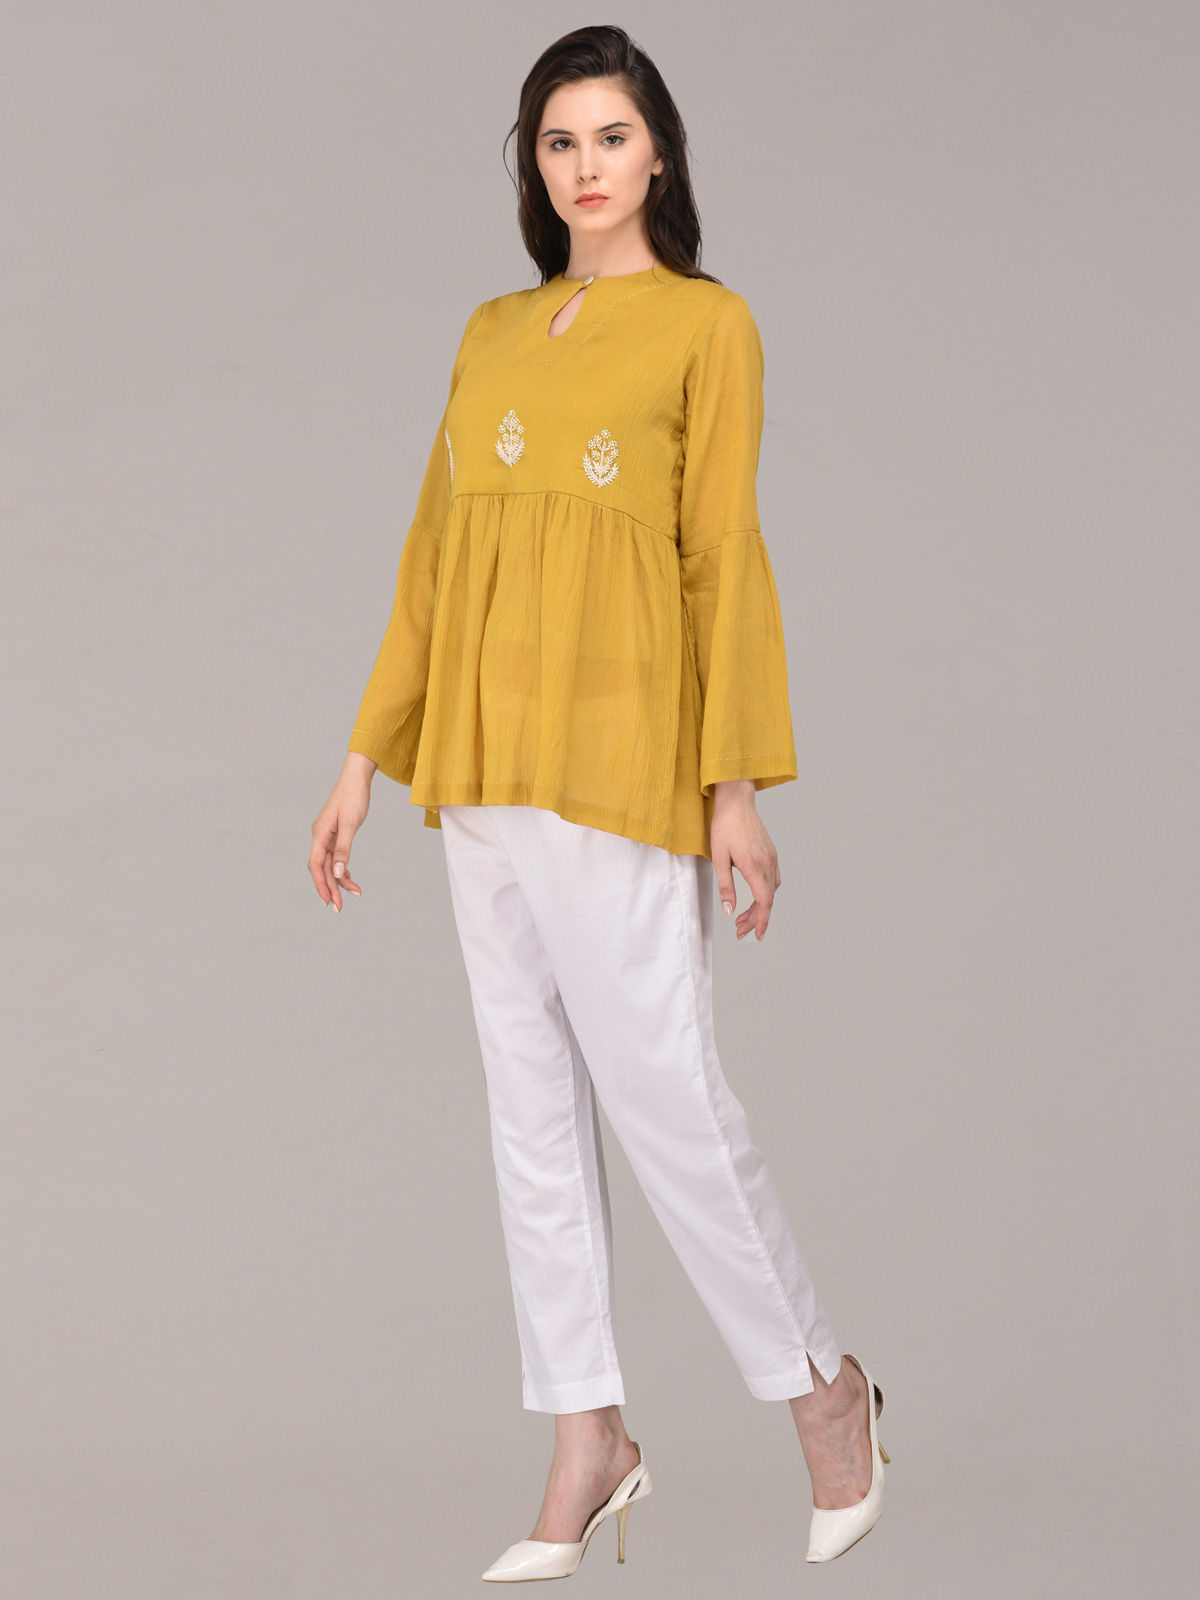 Panachee hand embroidered yellow pure cotton top